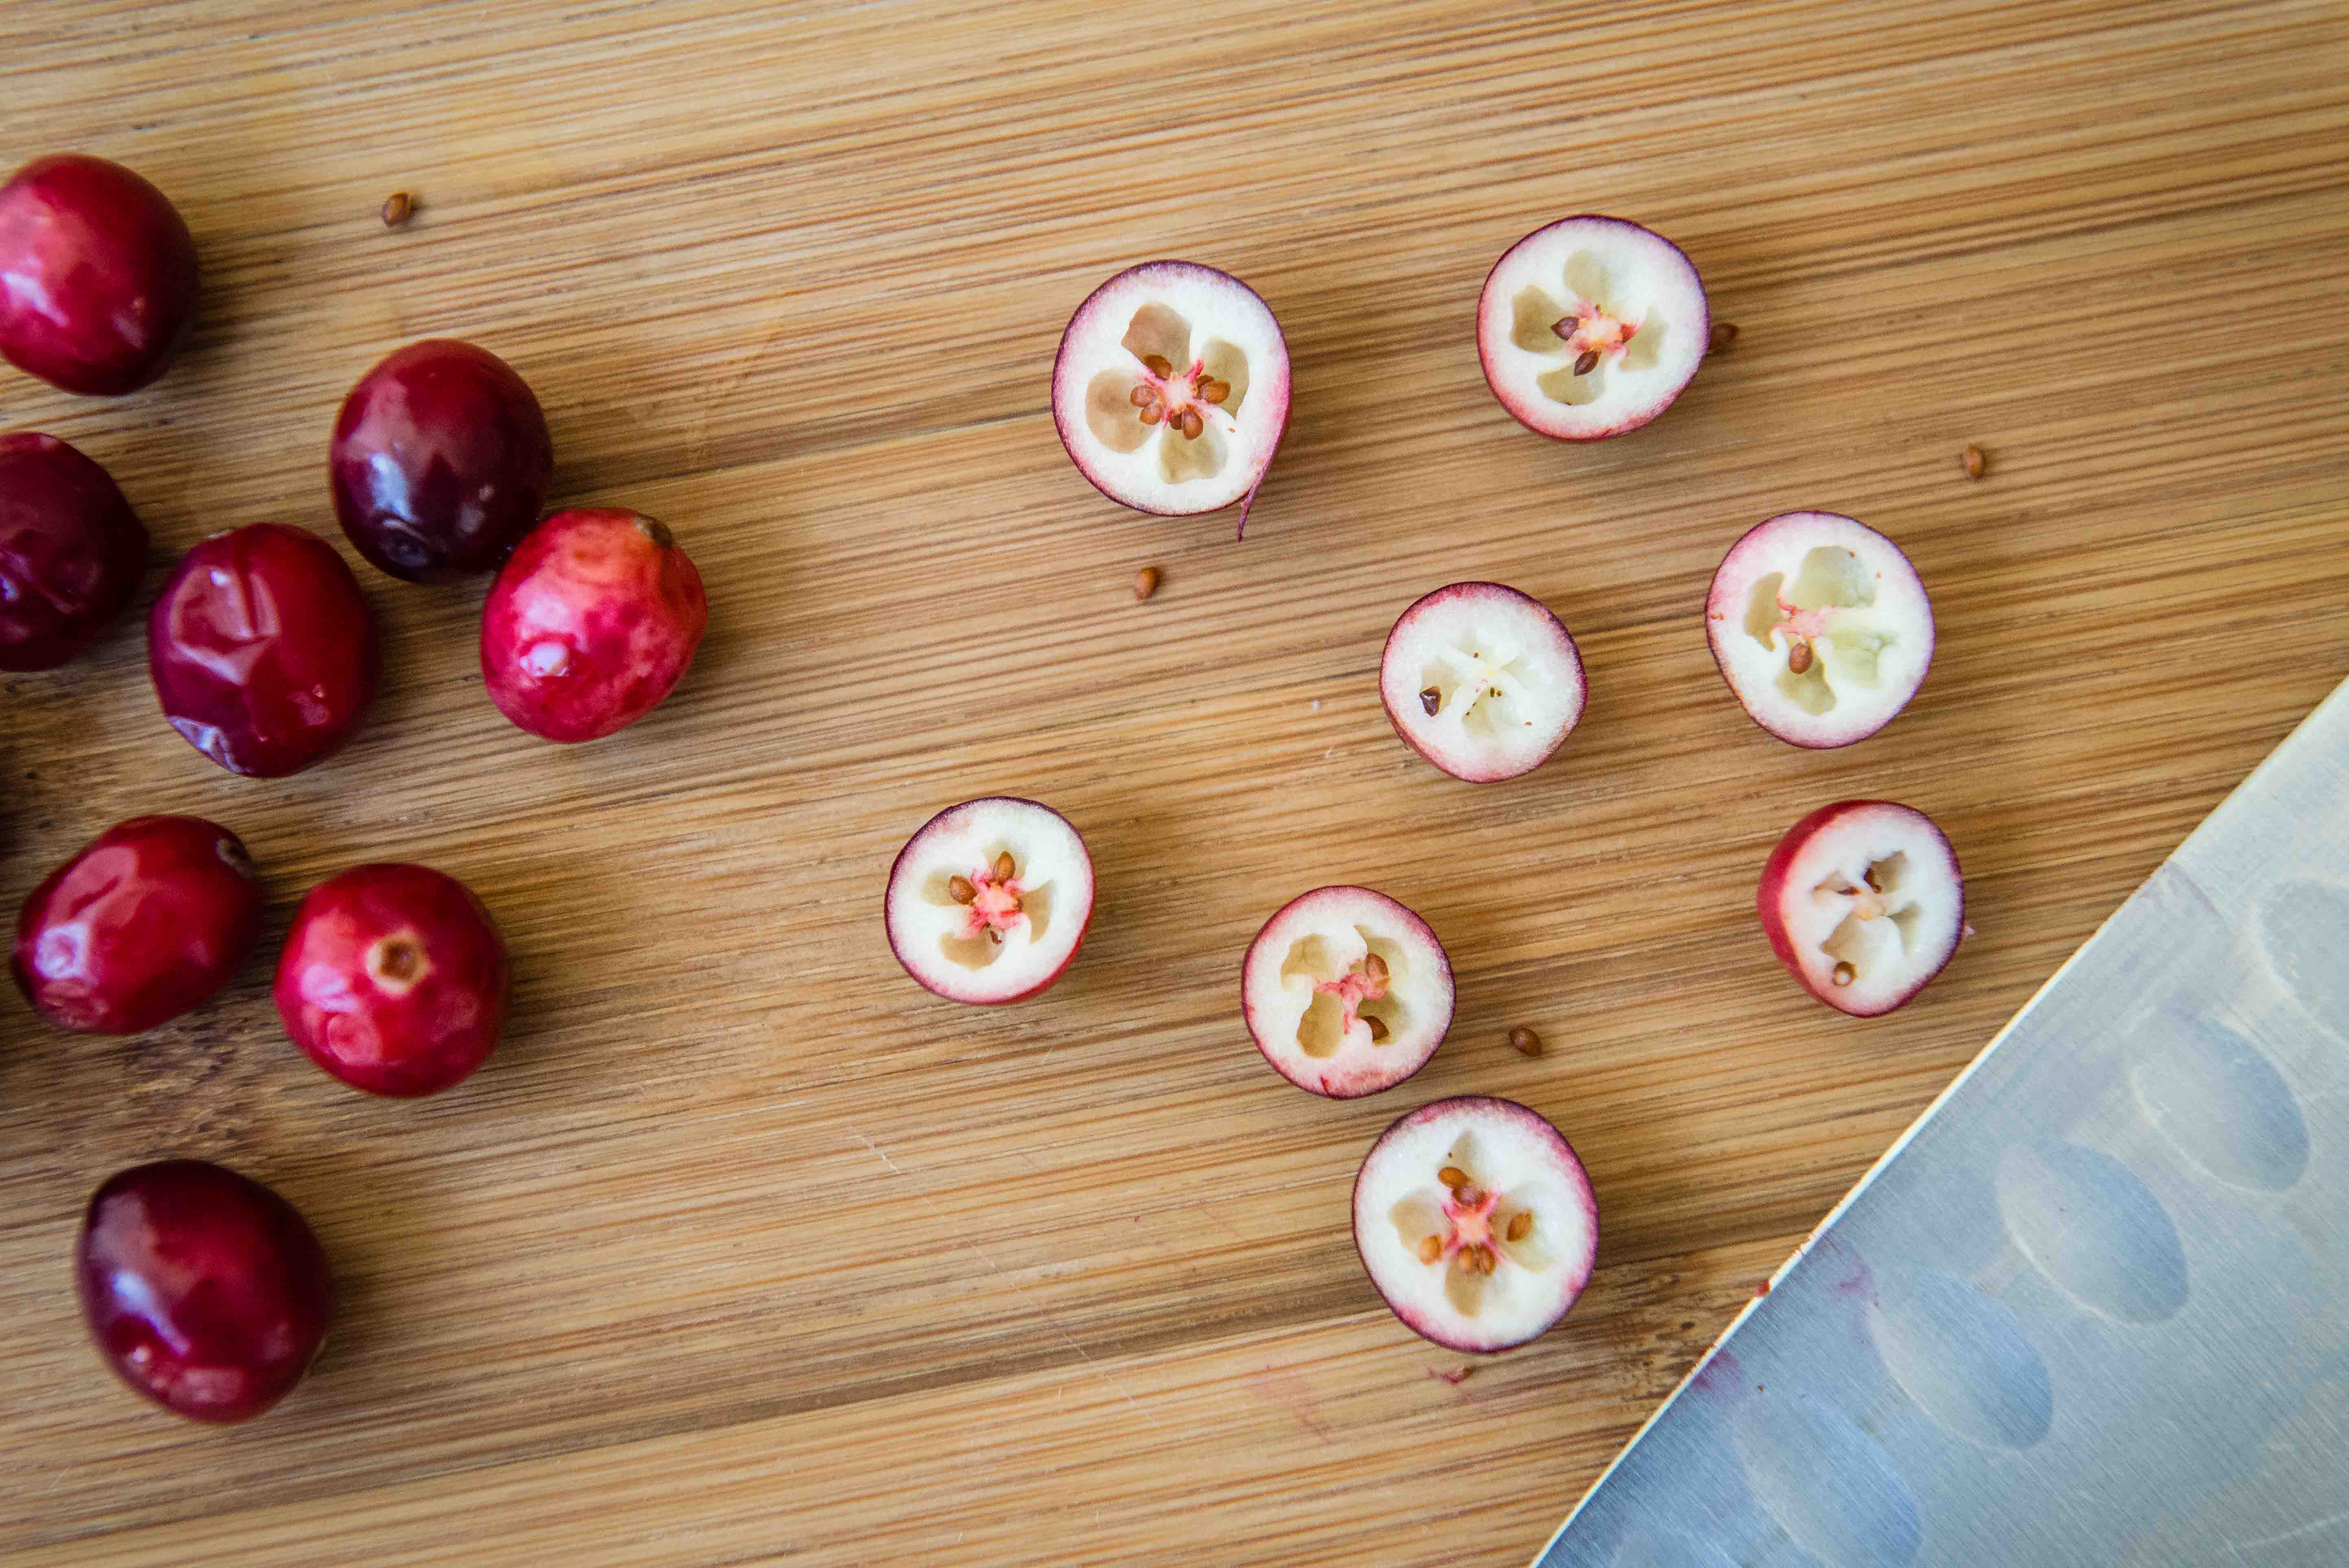 Cranberries Seeds Images